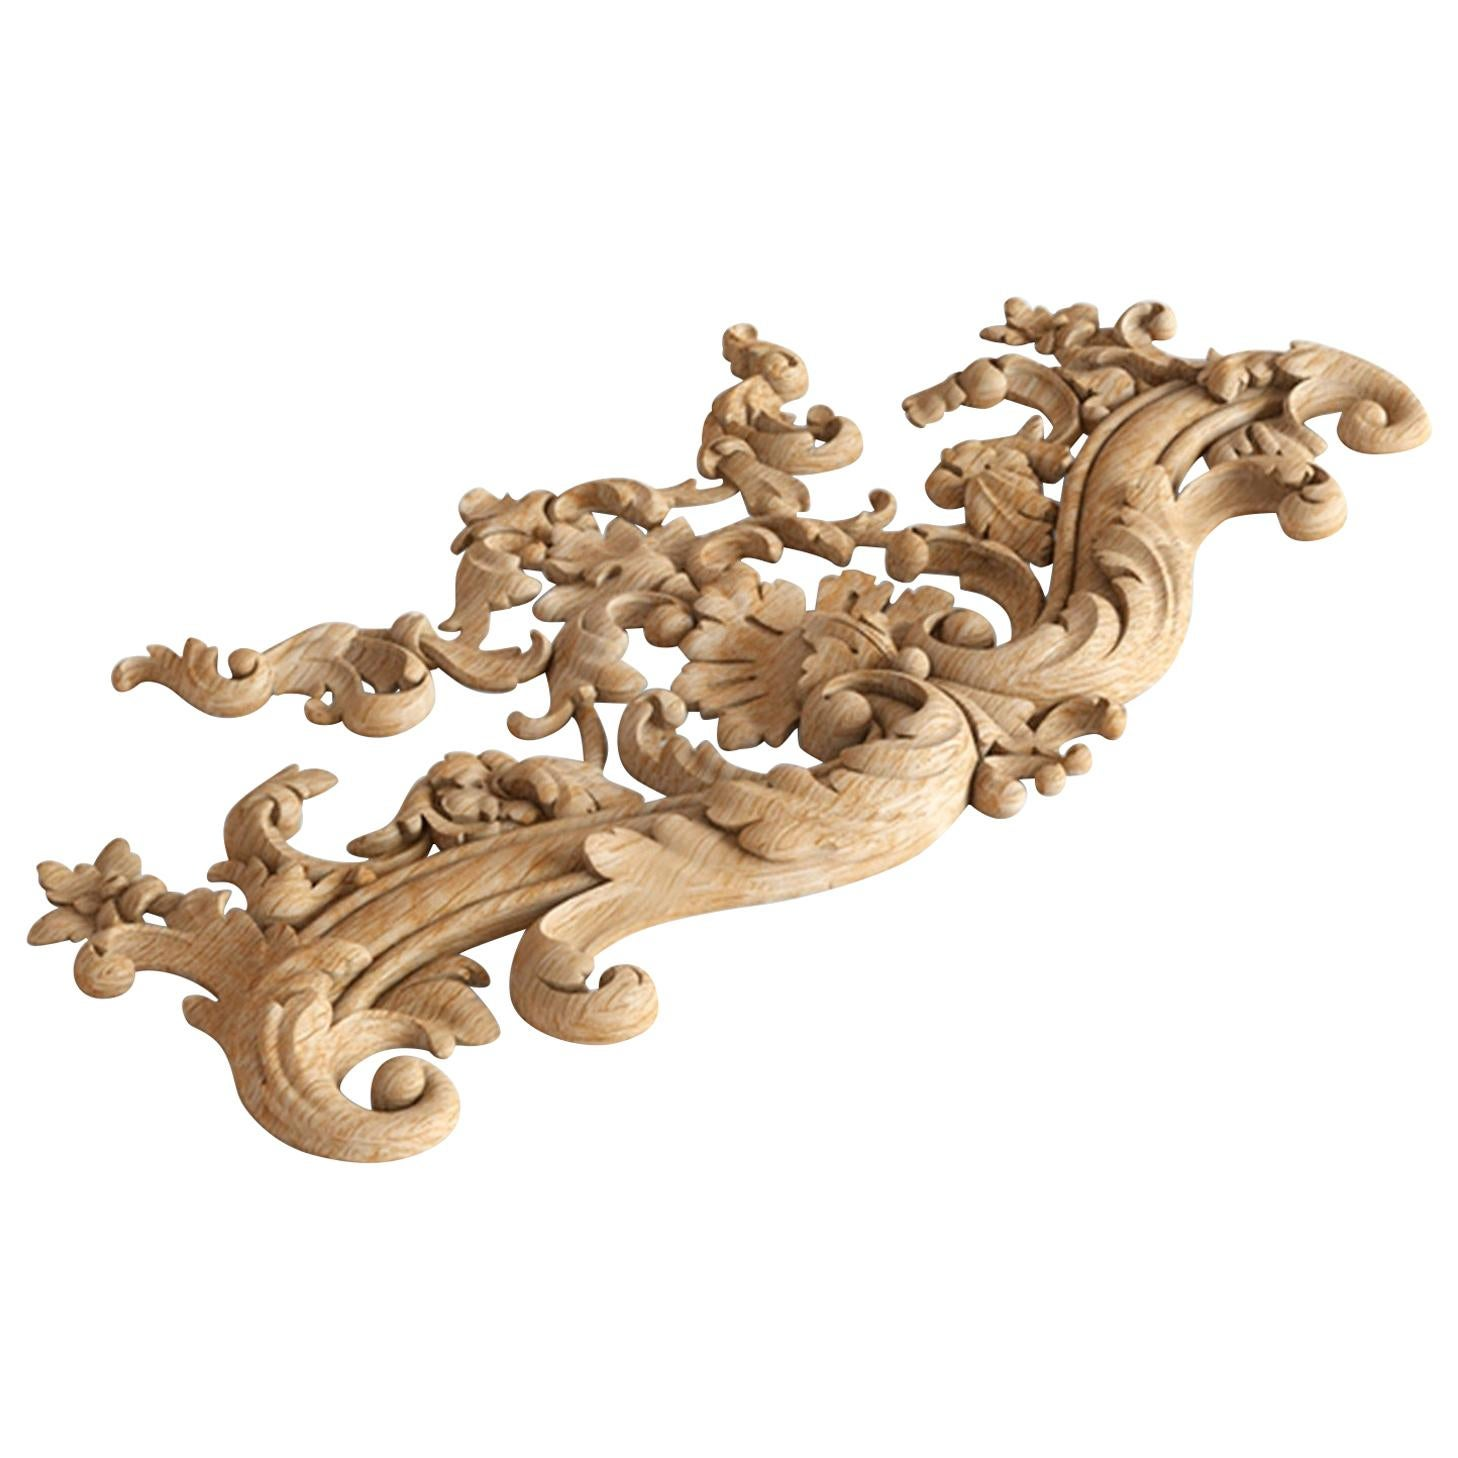 Vintage Millwork Wood Onlay, Artistic Wall Applique from Oak or Beech